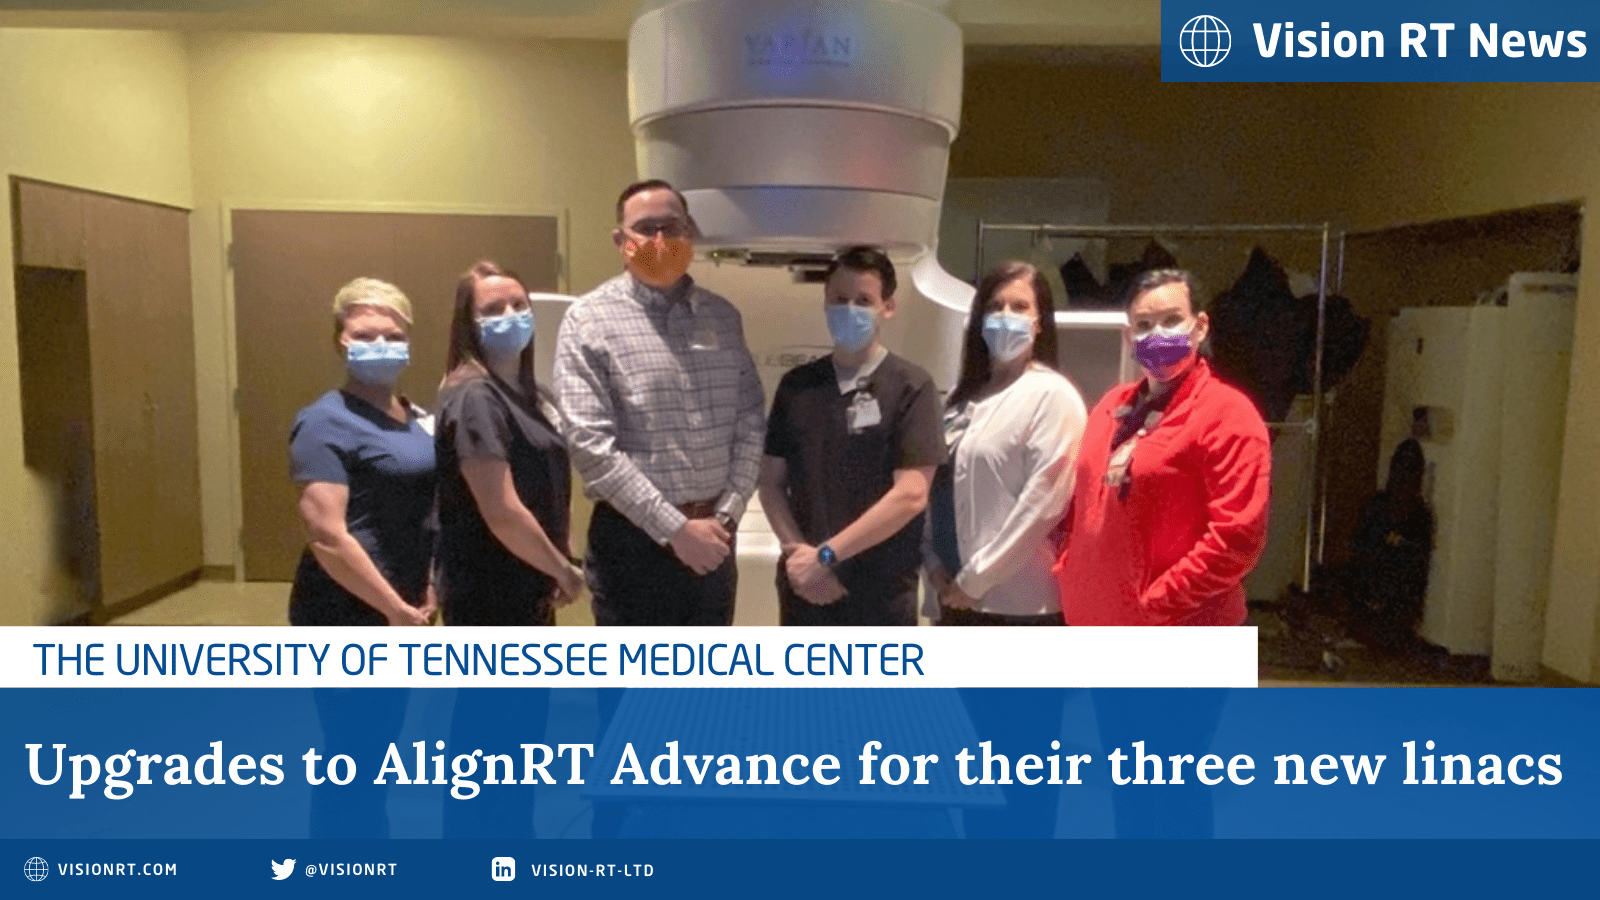 University of Tennessee medical center upgrade to AlignRT Advance Technology